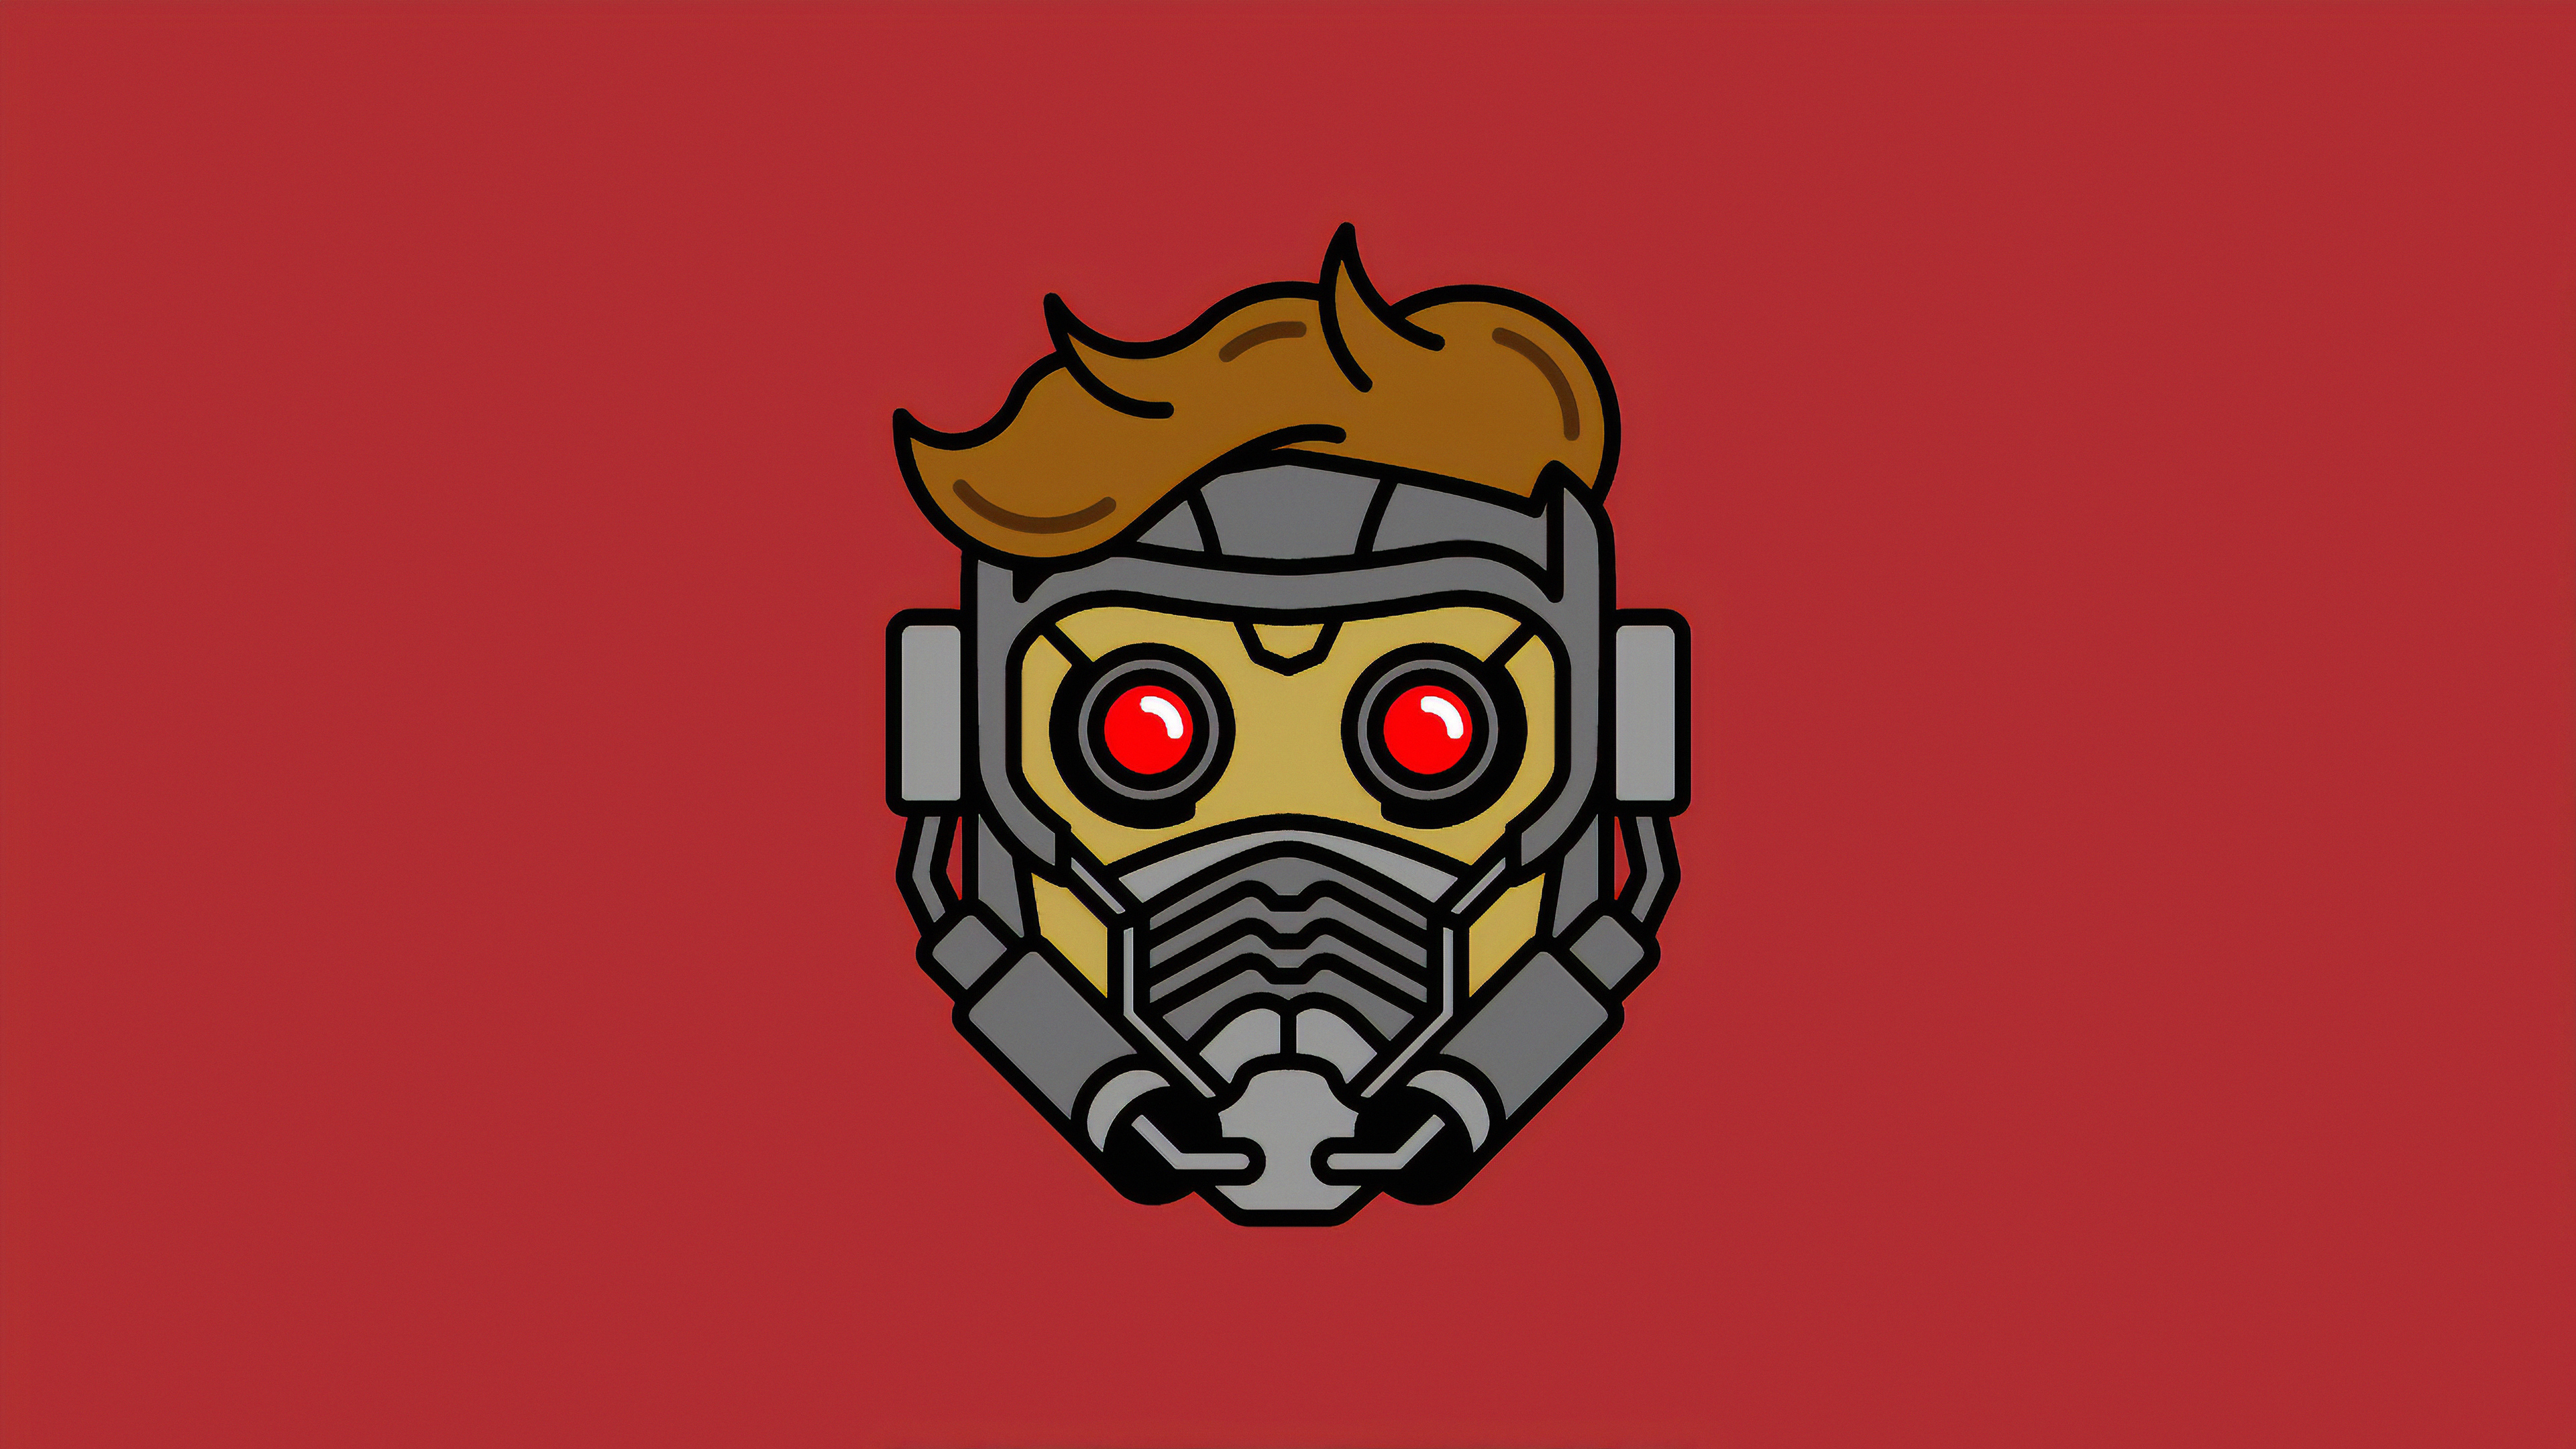 Minimal Star Lord Mask Wallpaper Hd Minimalist 4k